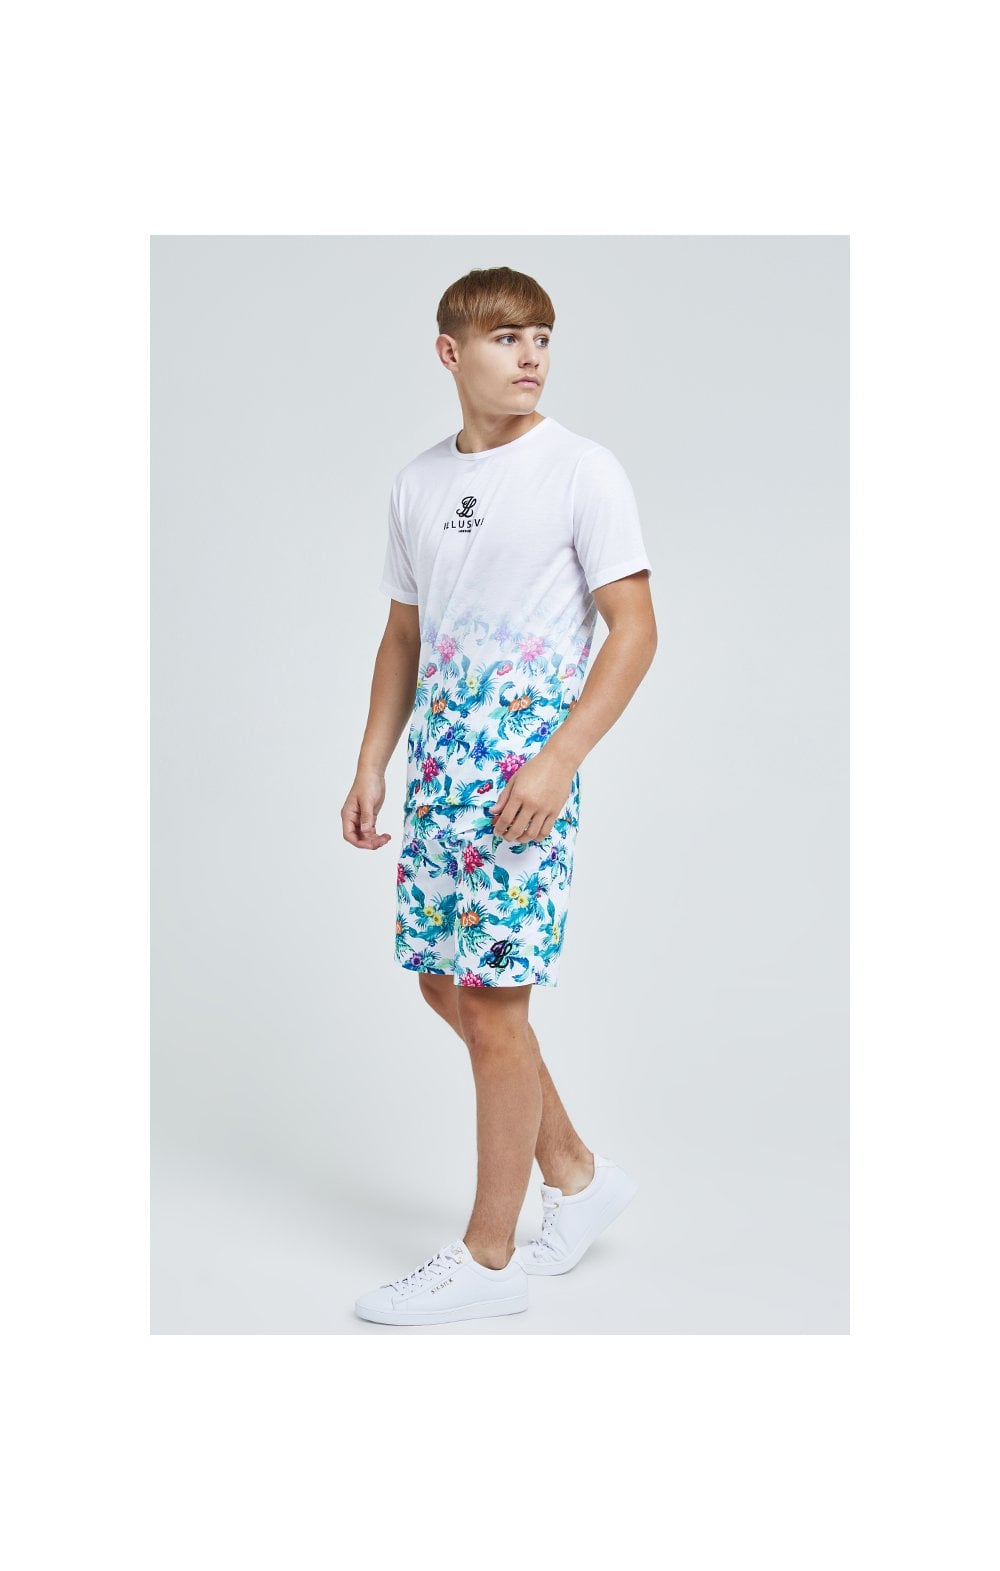 Illusive London Fade Tee – White & Floral (4)